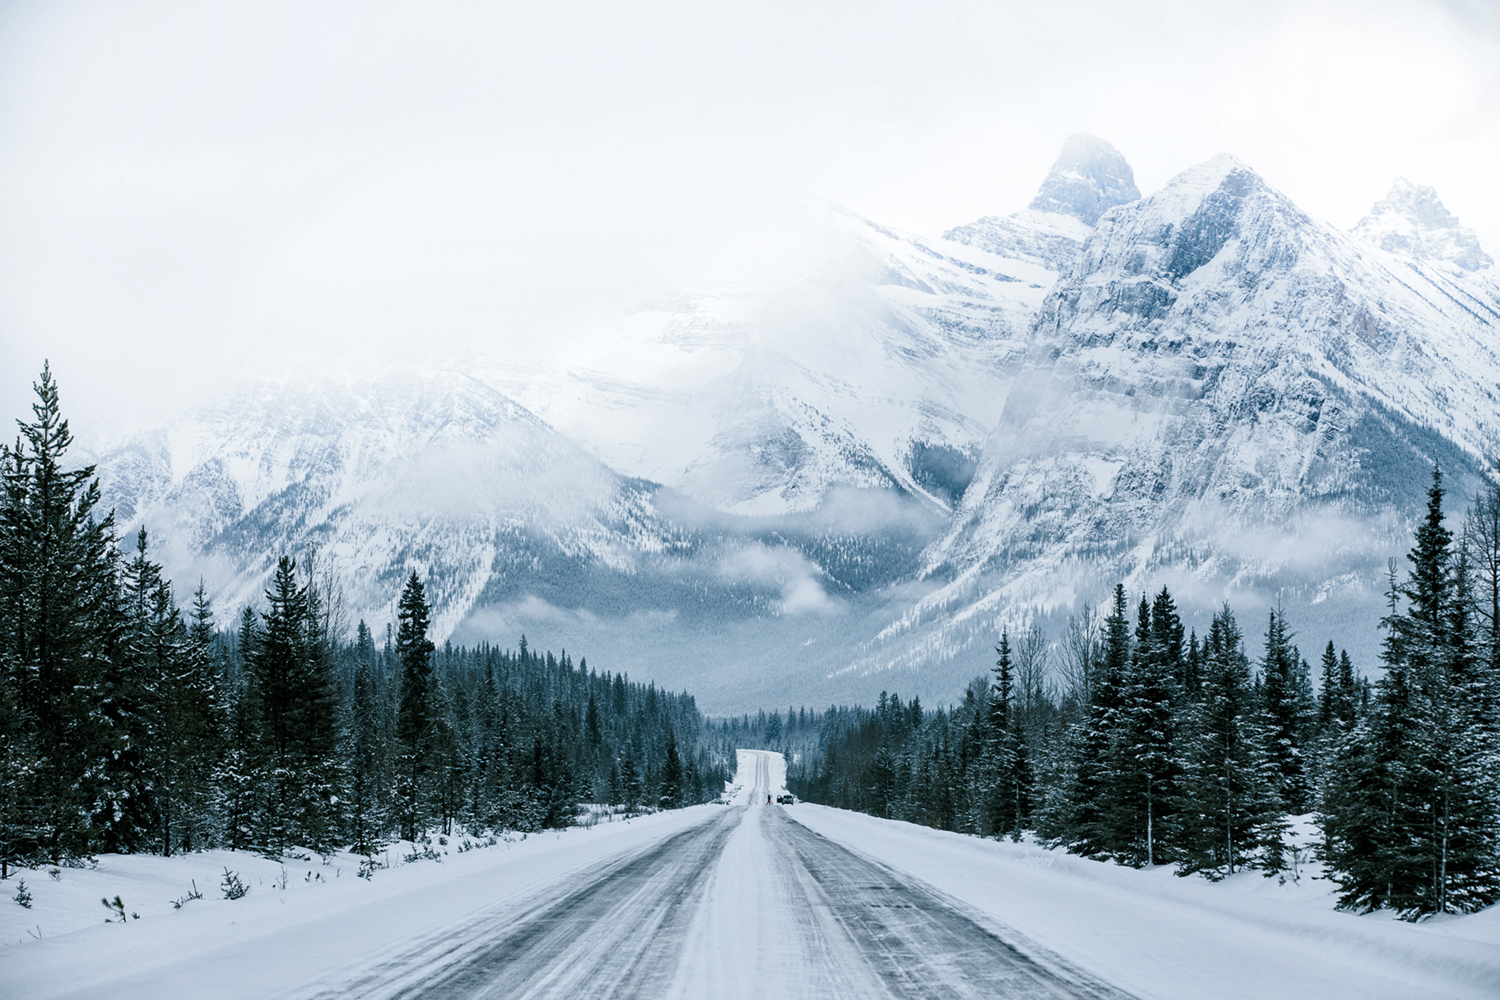 Icefields Parkway, Jasper National Park, Canada